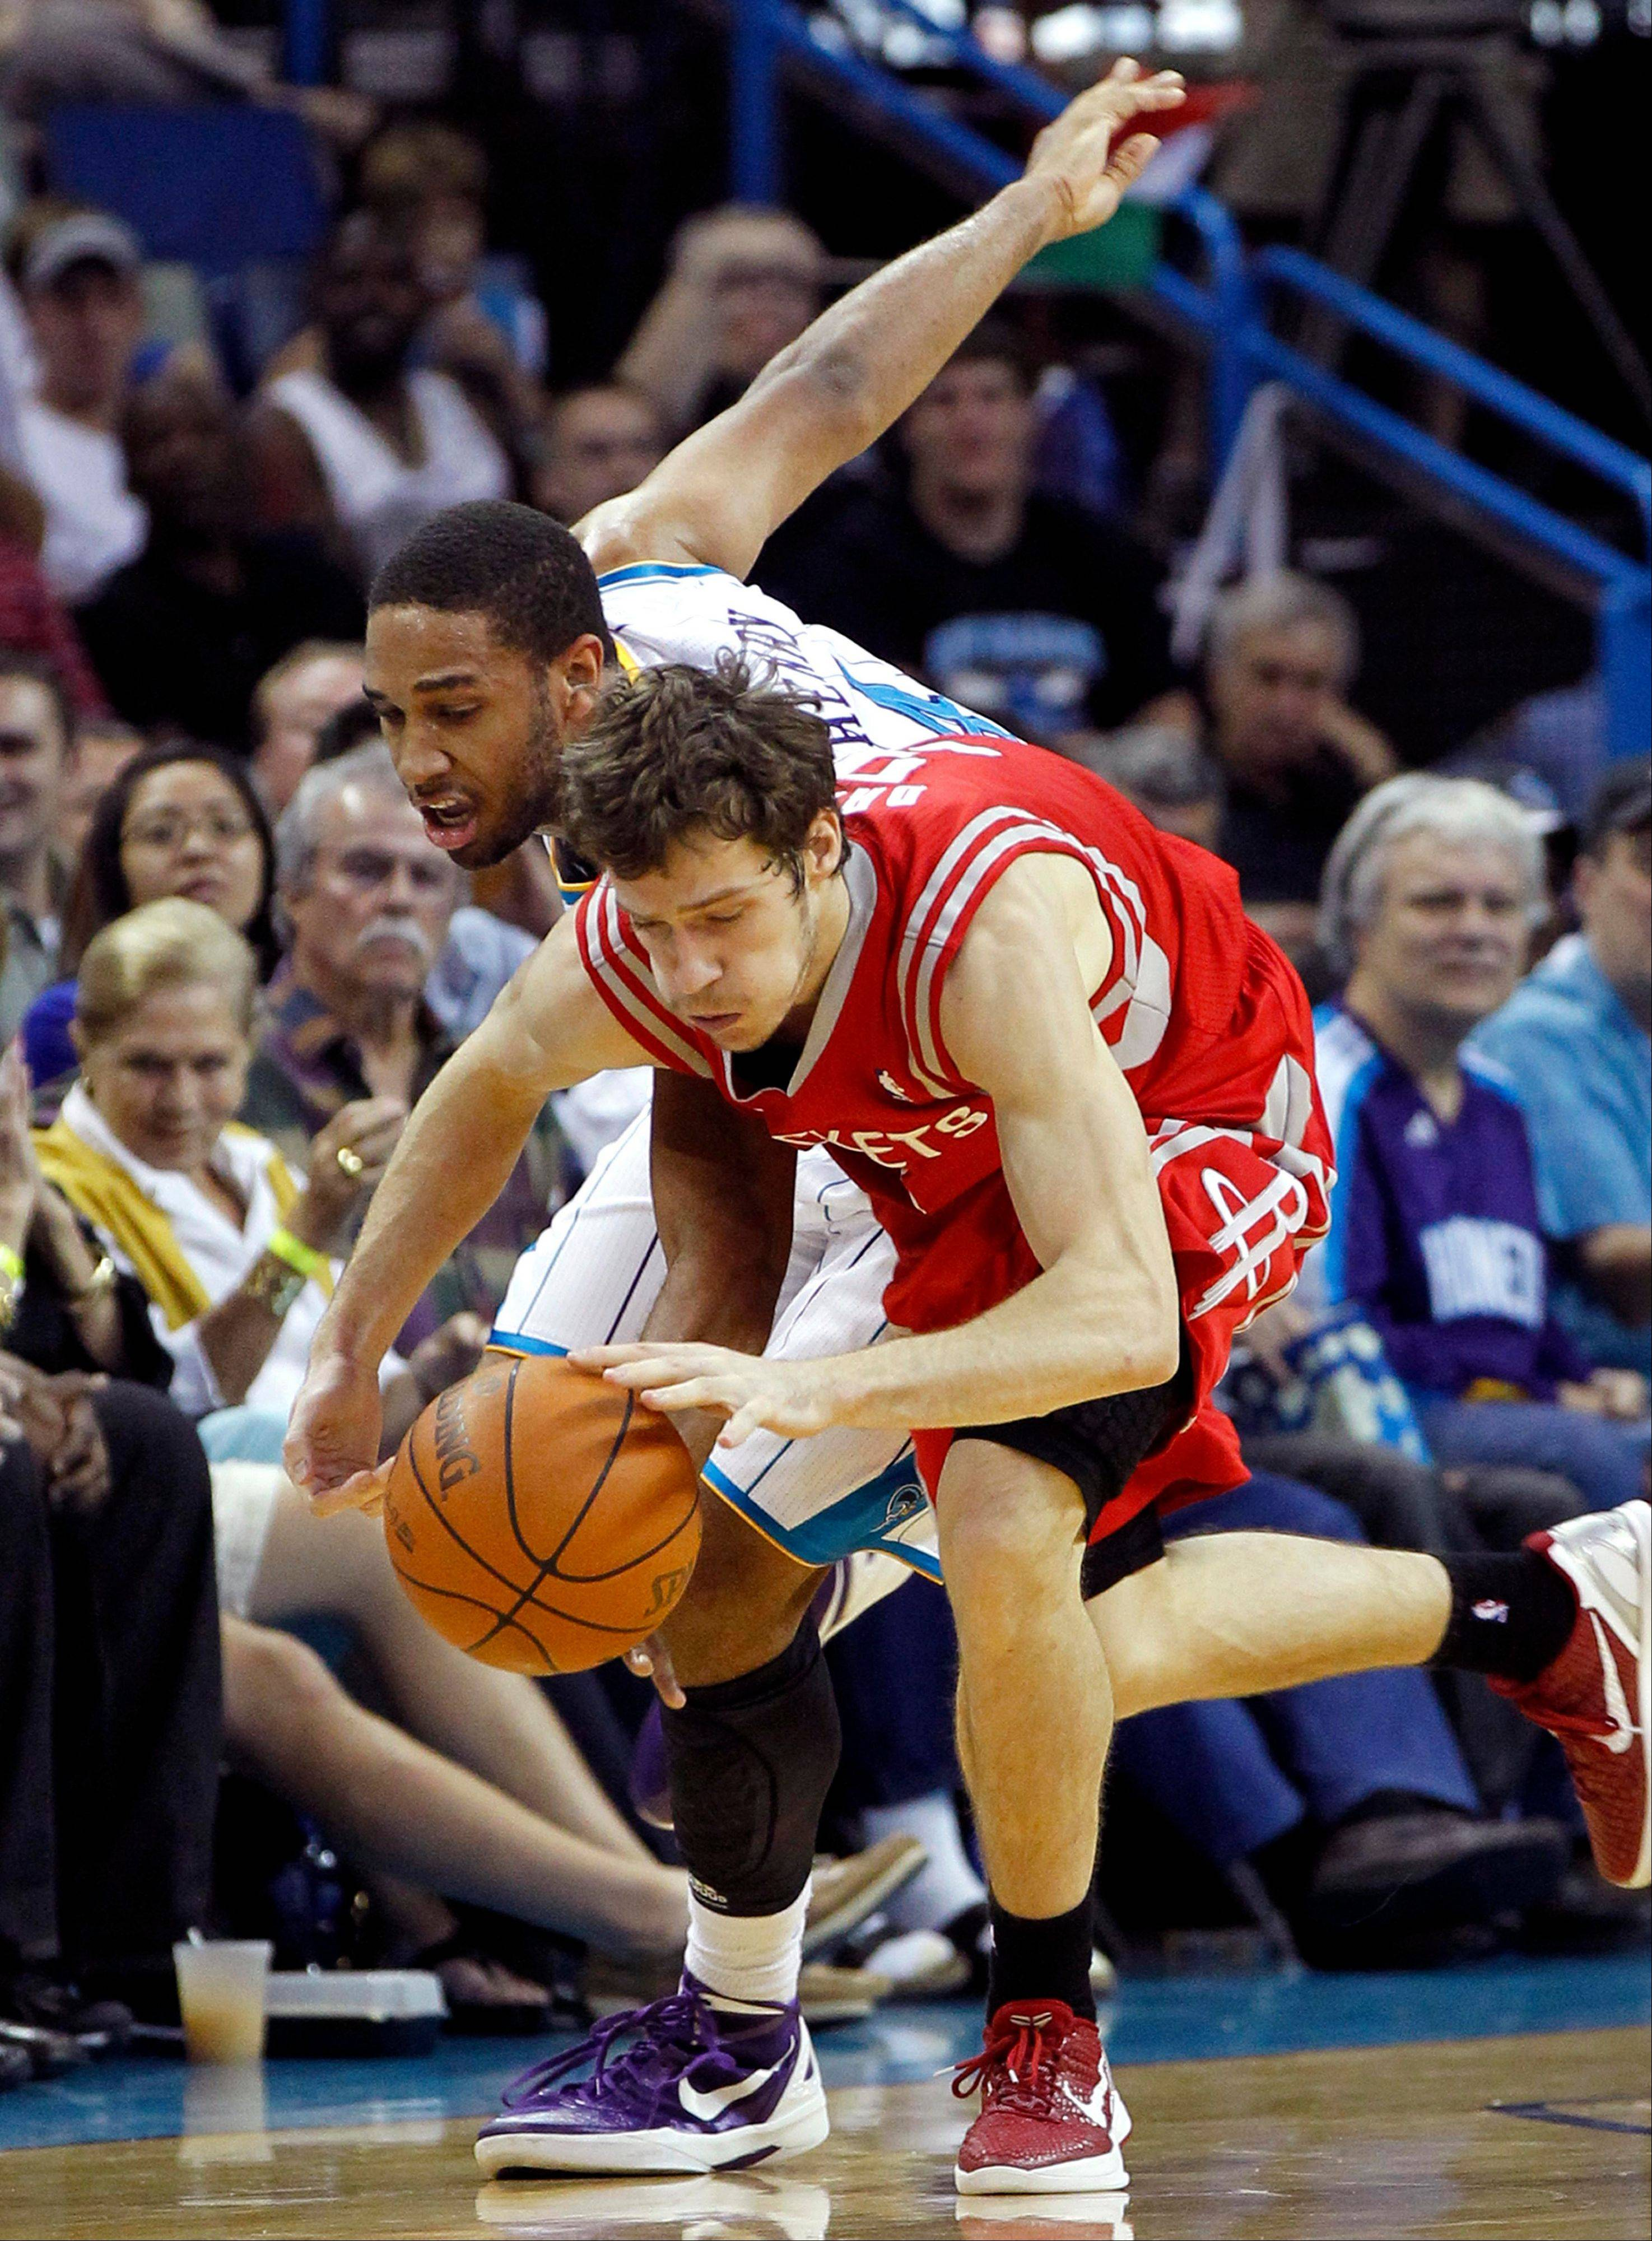 Houston Rockets point guard Goran Dragic battles for a loose ball with New Orleans Hornets shooting guard Xavier Henry in the second half Thursday in New Orleans.